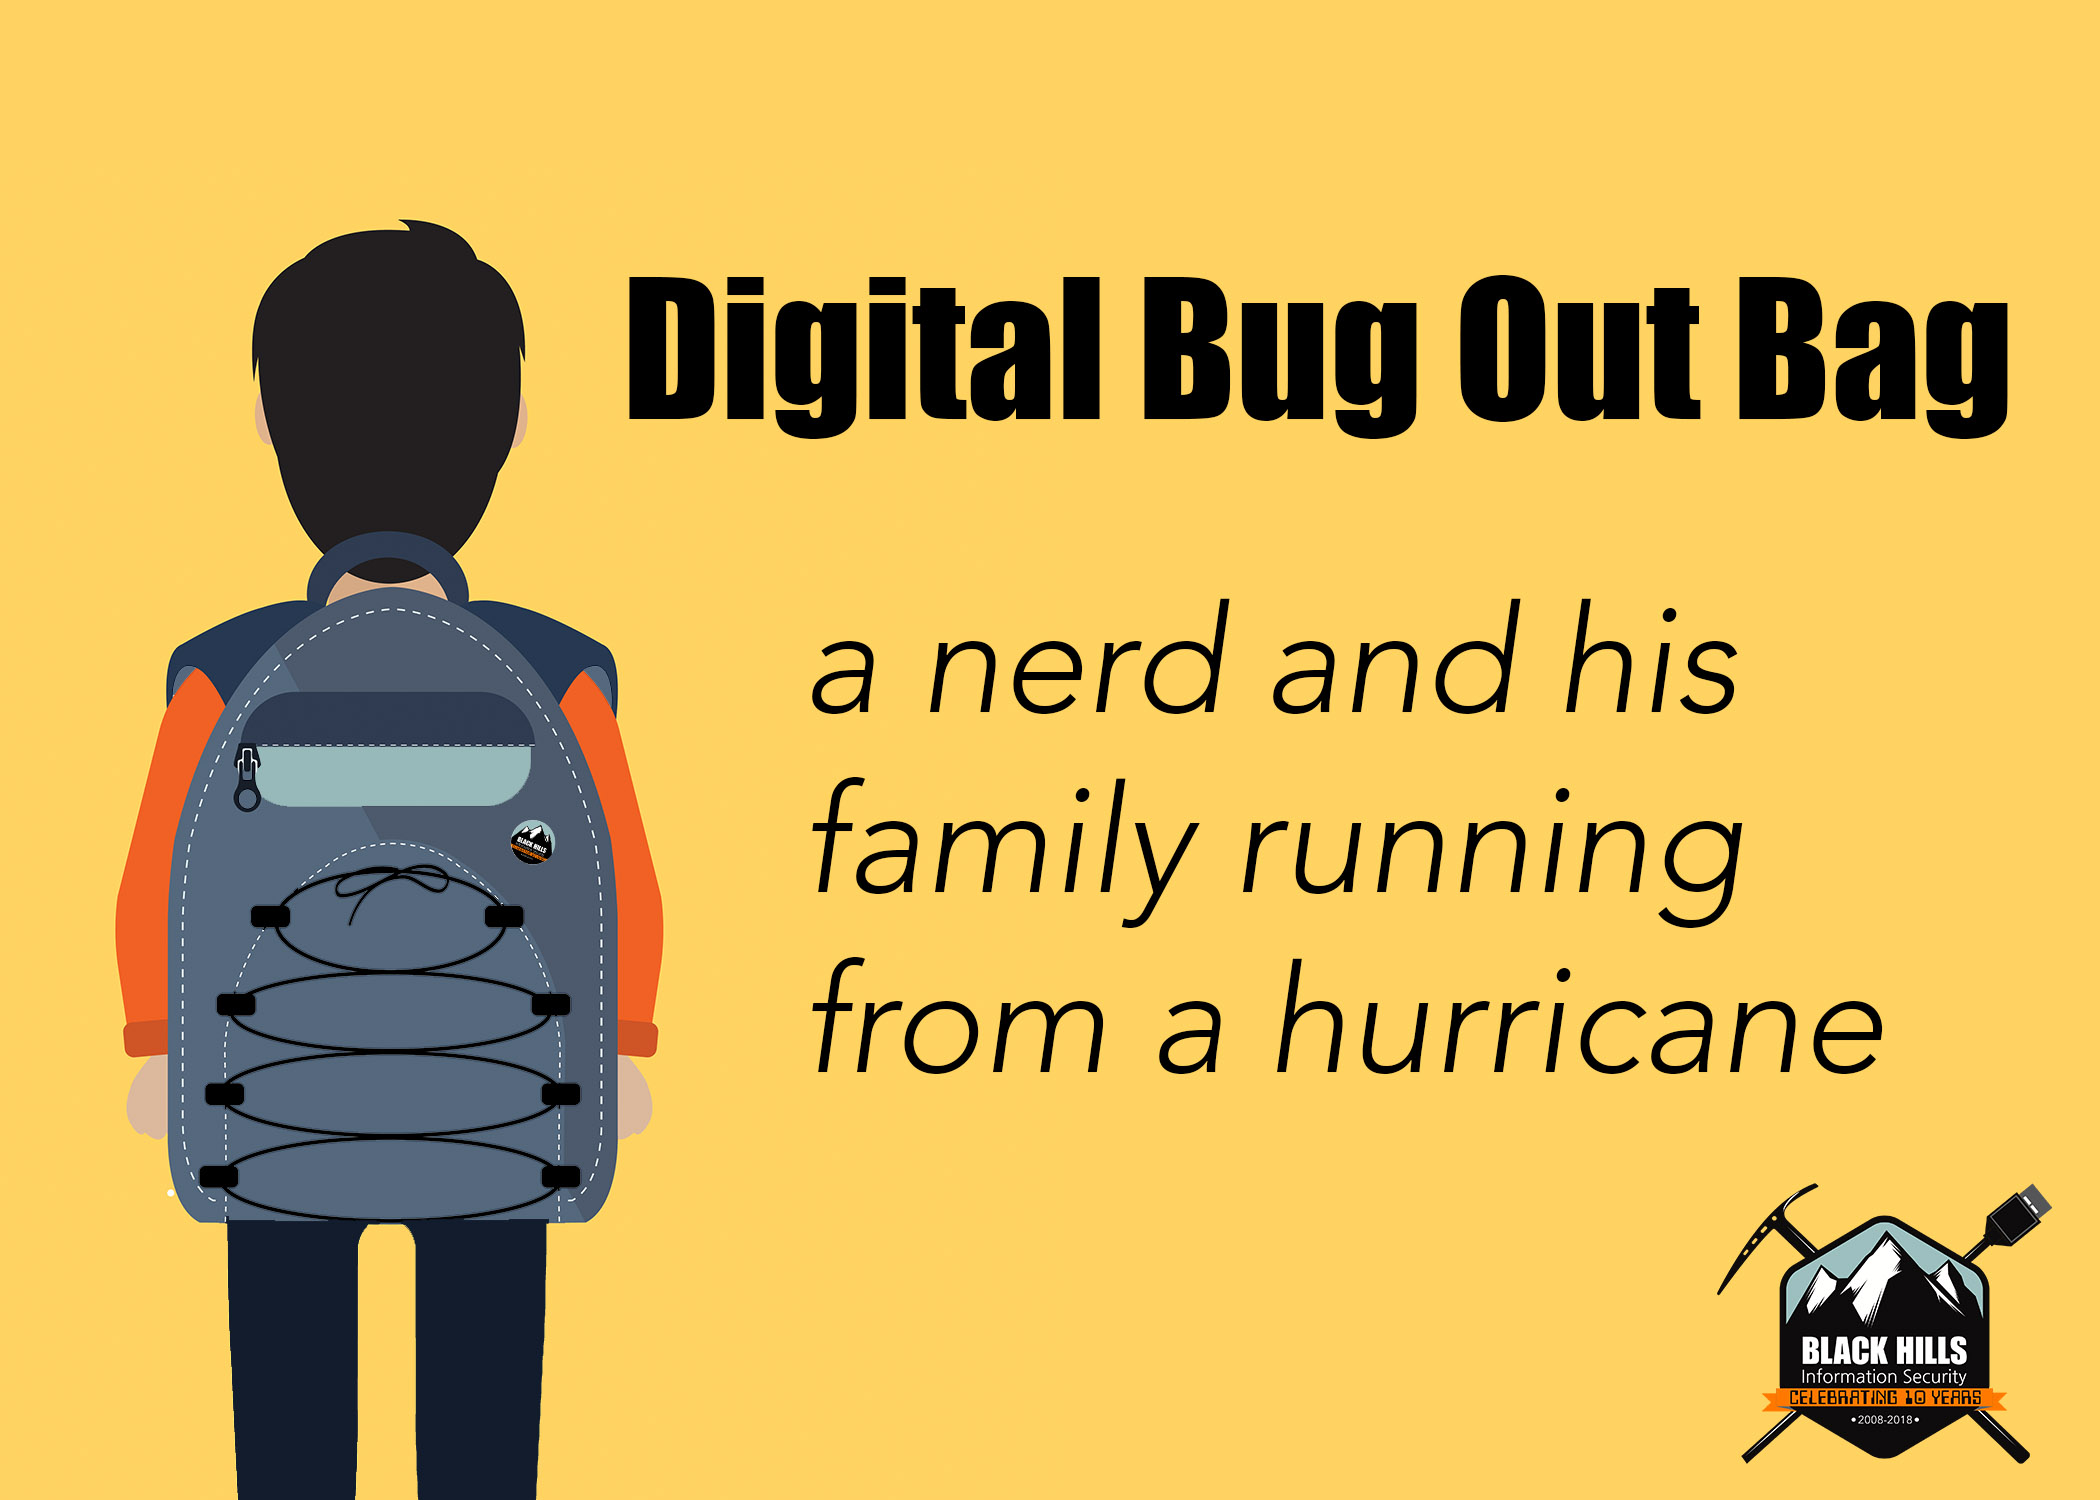 Digital Bug Out Bag: A Nerd and His Family Running From a Hurricane